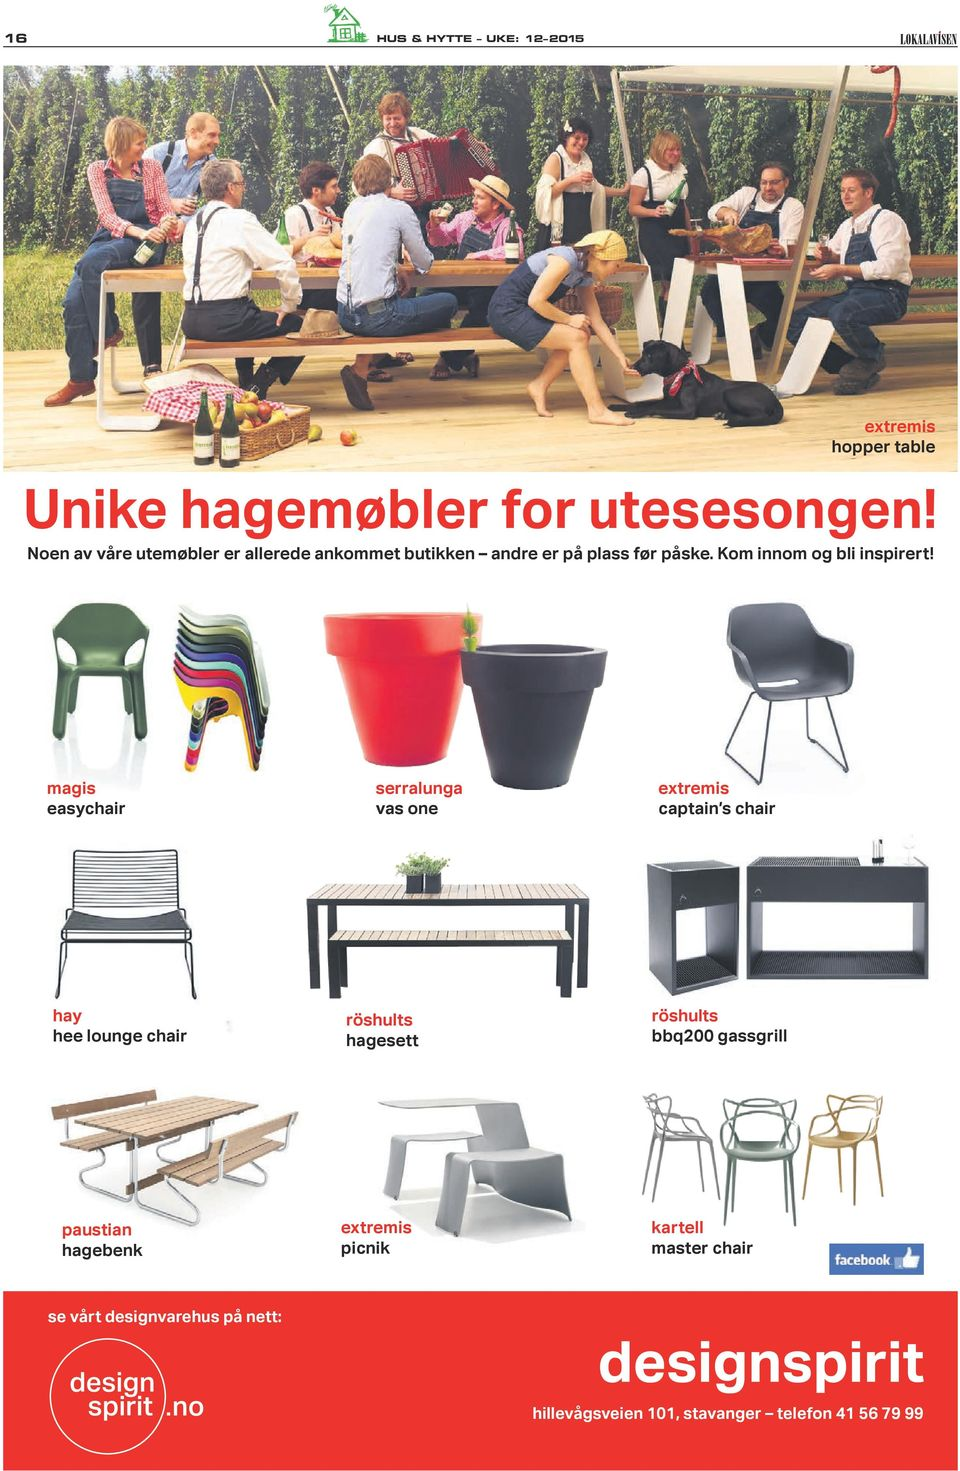 magis easychair serralunga vas one extremis captain s chair hay hee lounge chair röshults hagesett röshults bbq200